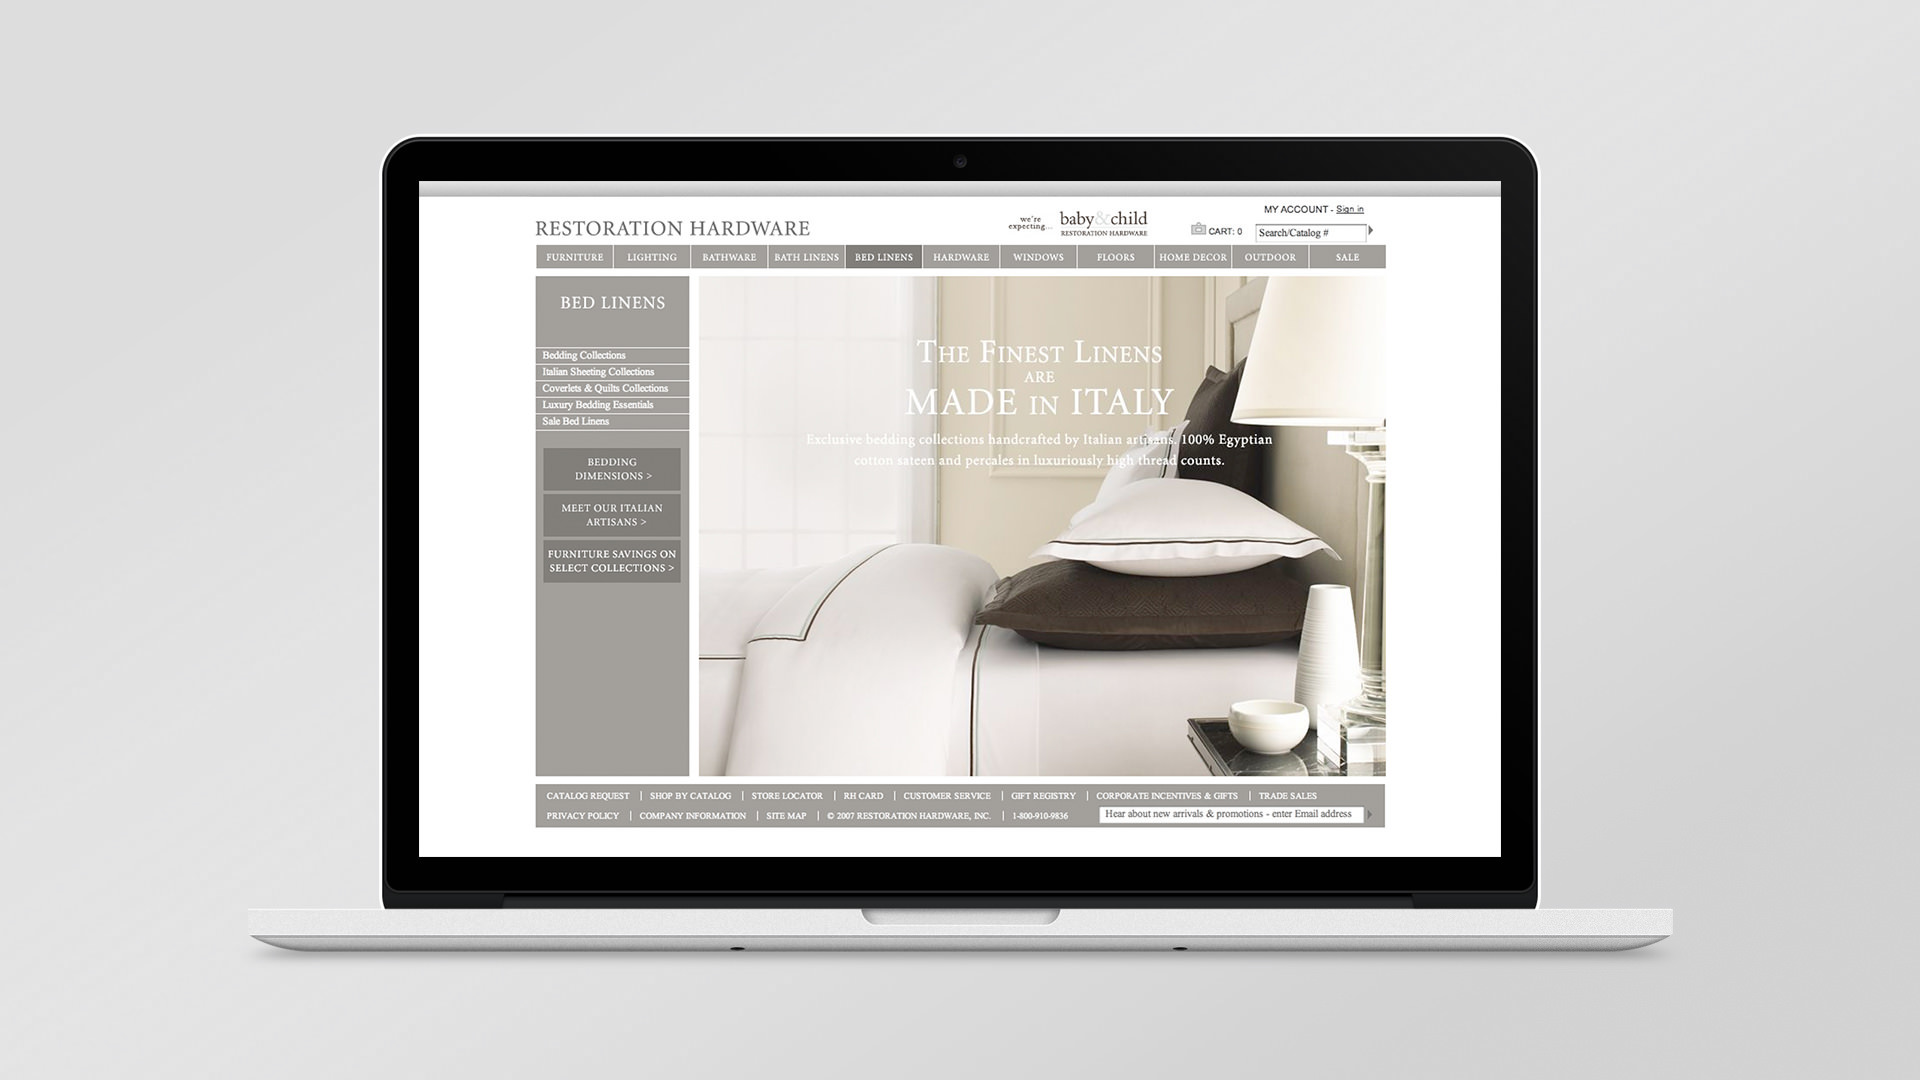 restoration_hardware_website